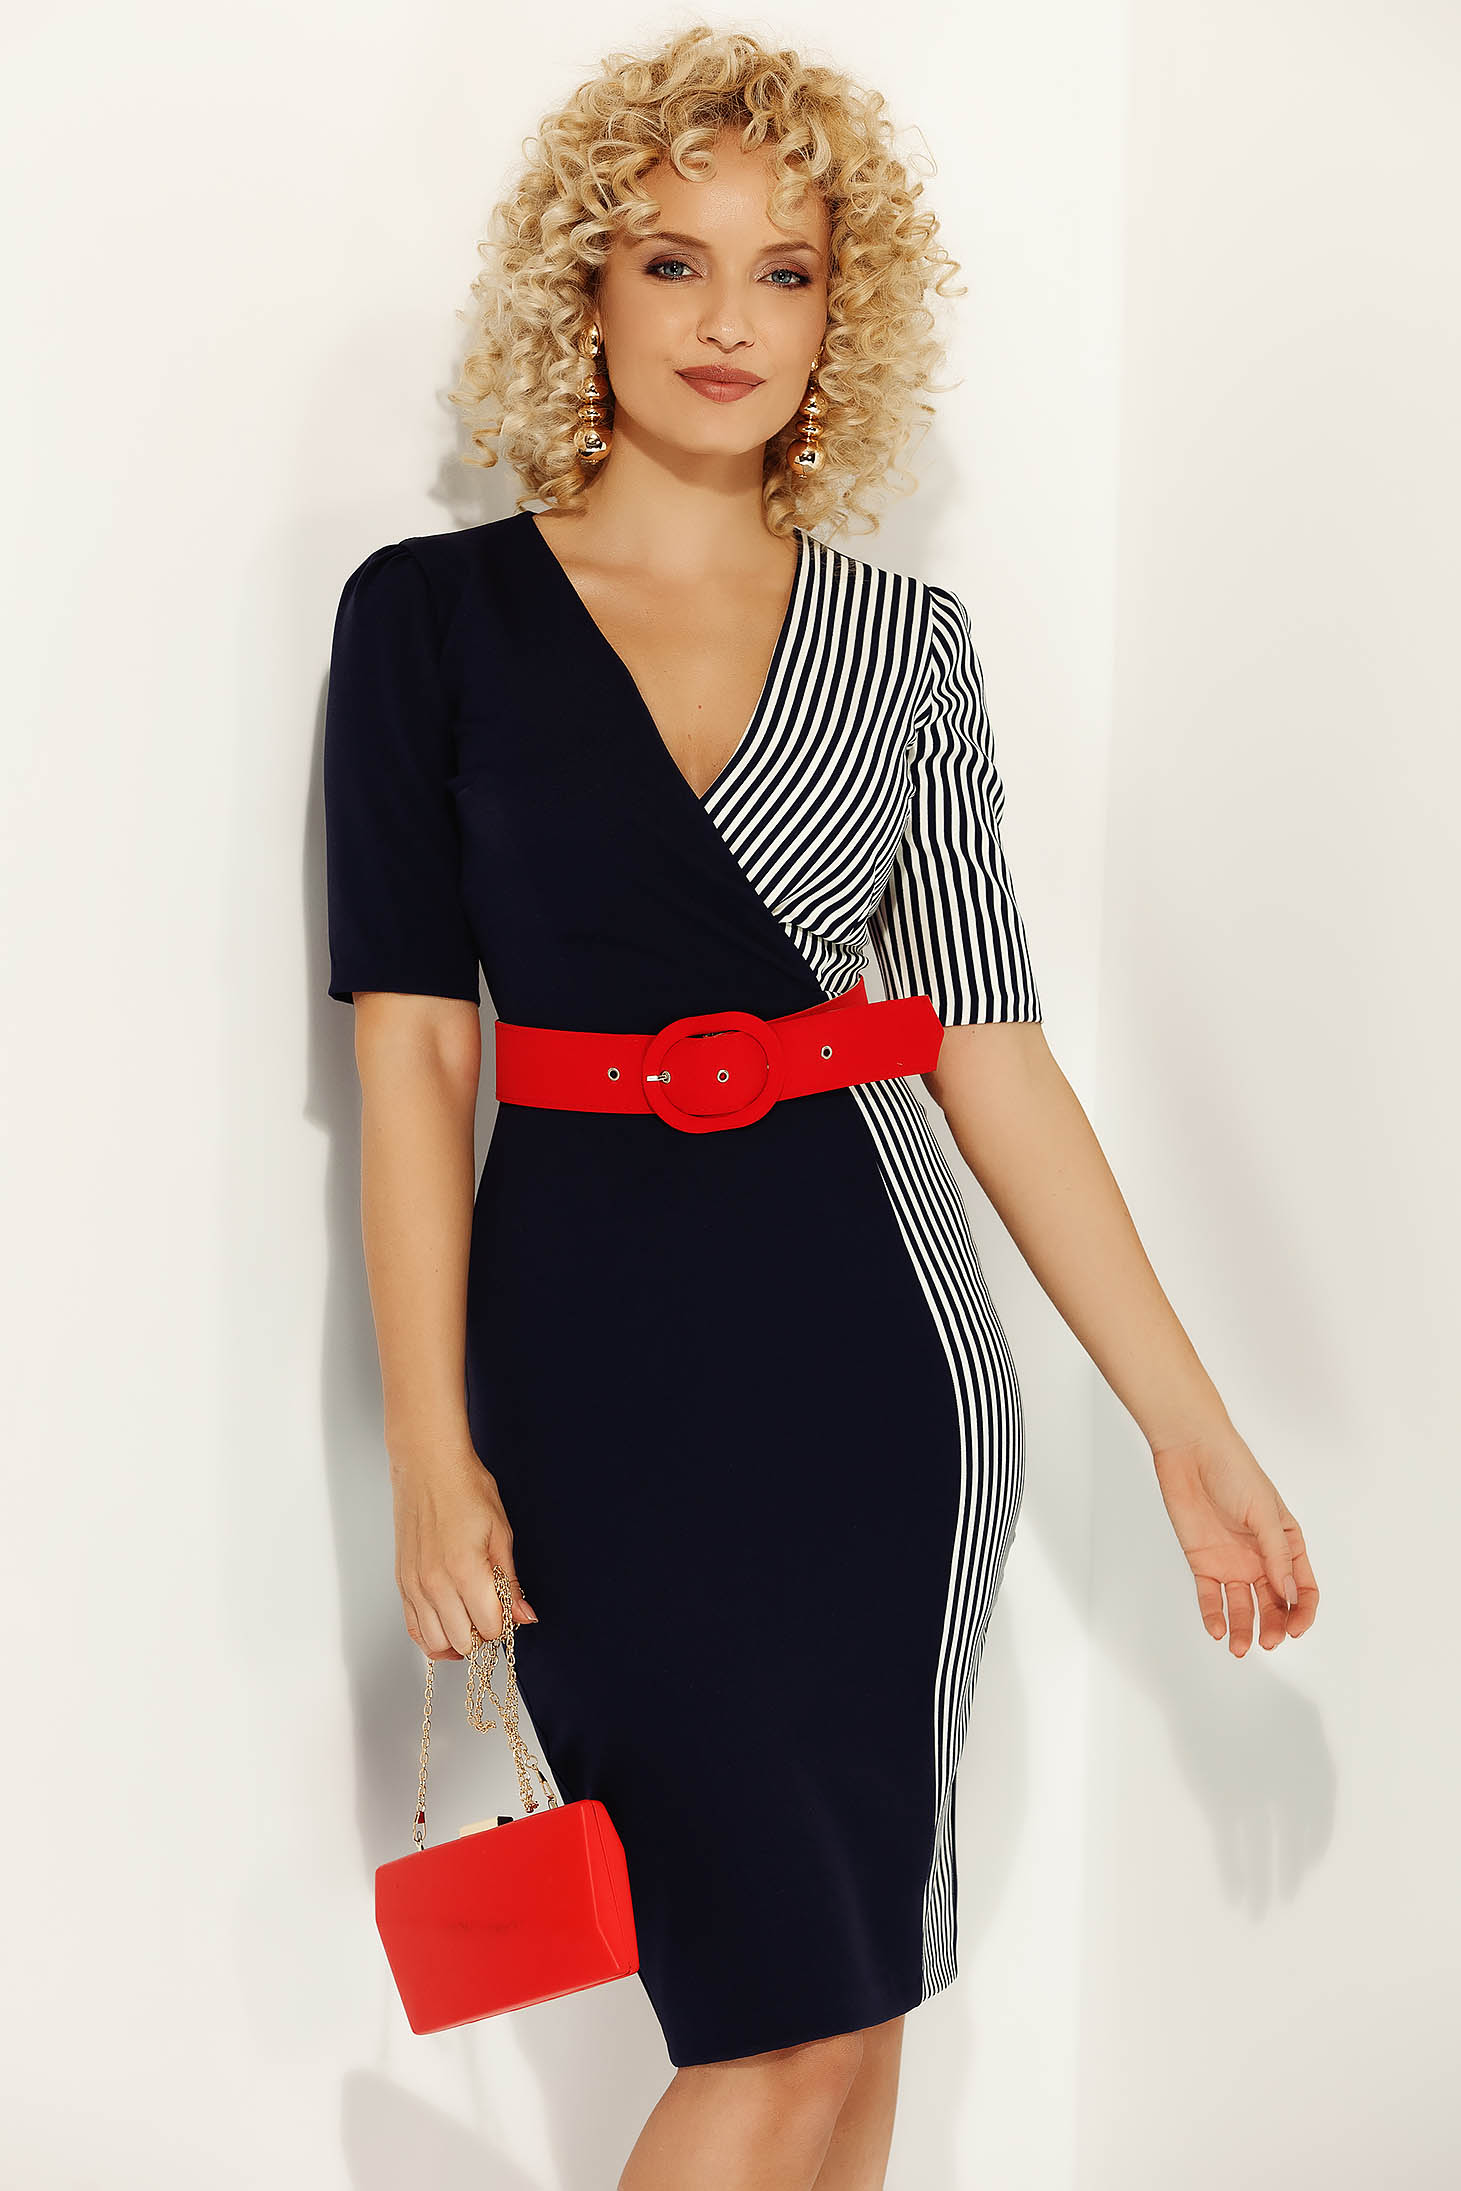 Fofy darkblue office midi dress slightly elastic fabric with tented cut accessorized with belt